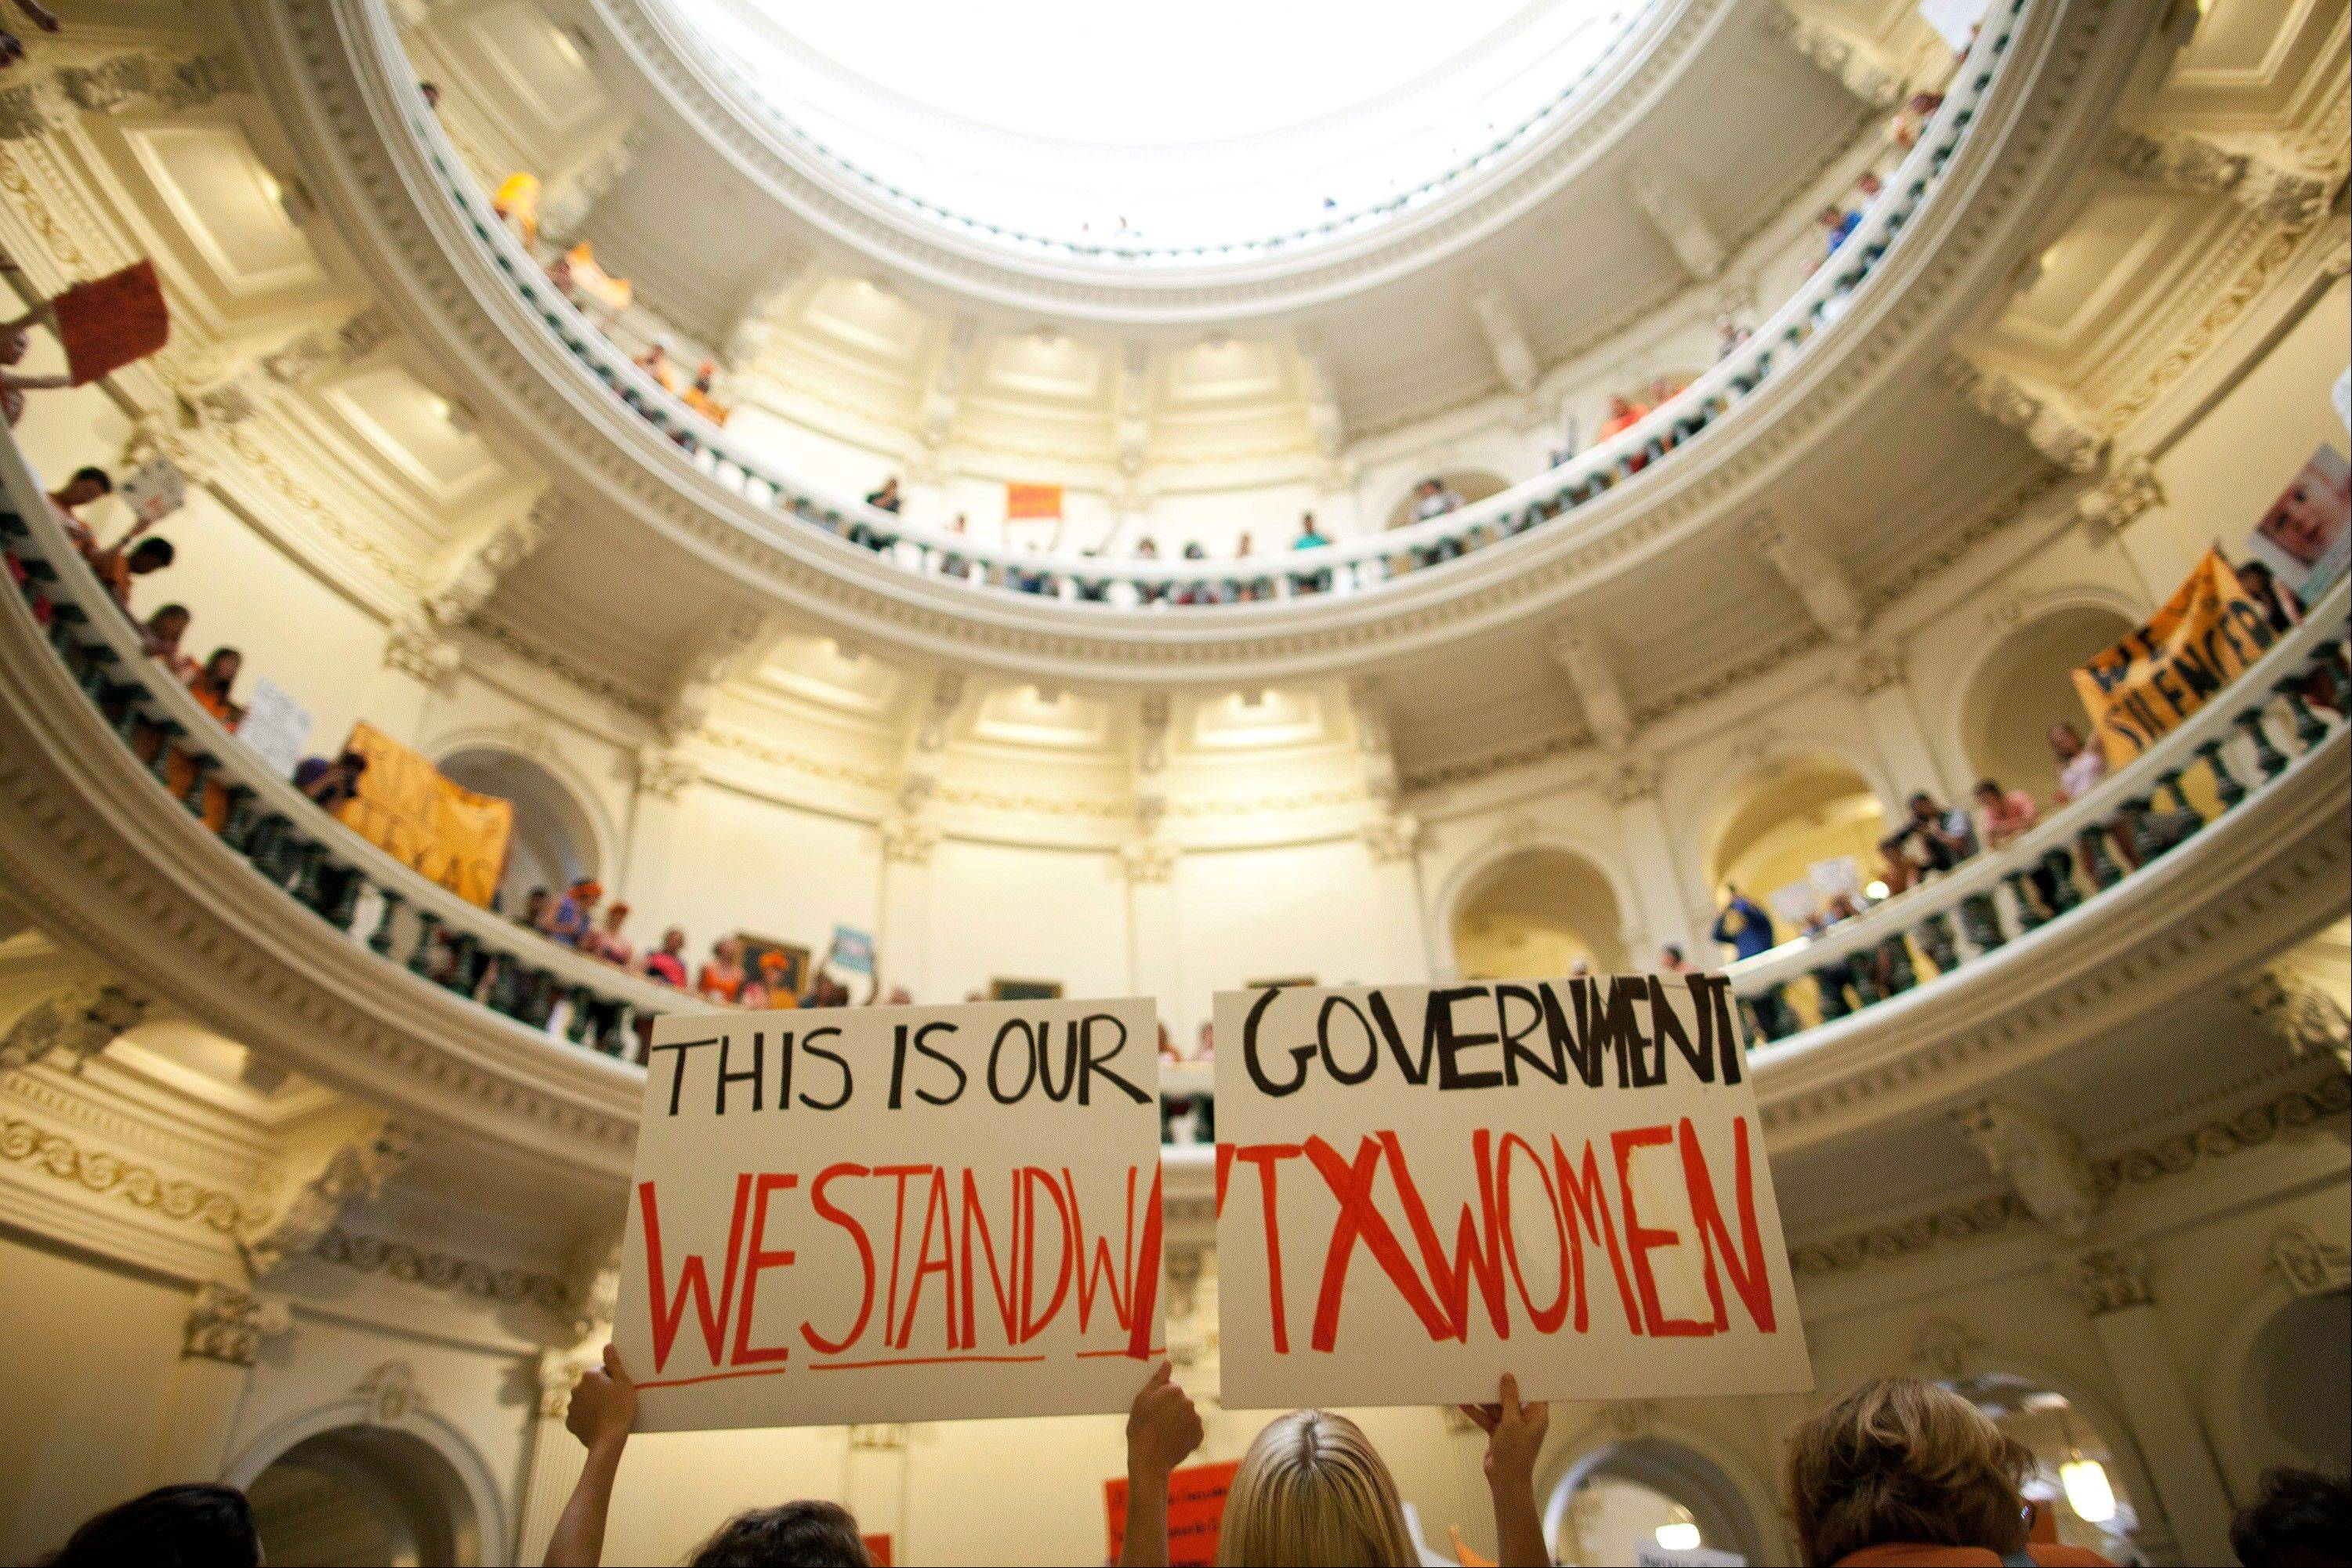 New abortion restrictions passed by the Texas Legislature are unconstitutional and will not take effect as scheduled on Tuesday, Oct. 29, 2013, a federal judge has ruled.